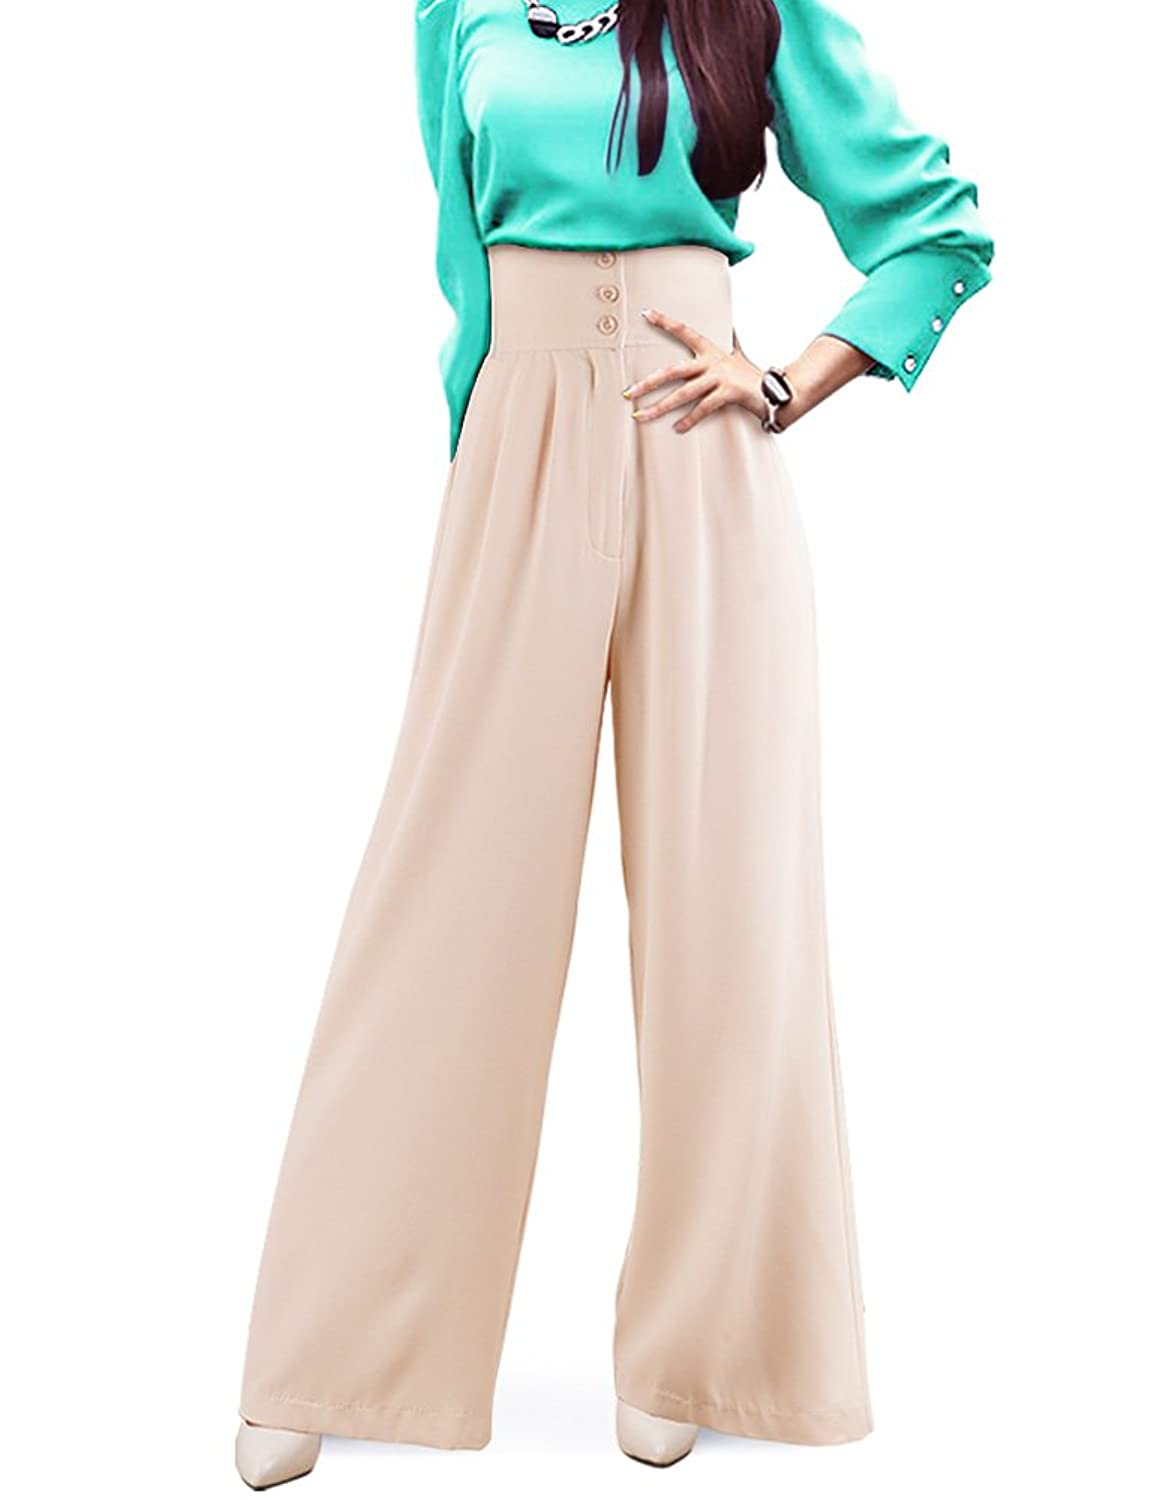 1930s Women's Pants and Beach Pajamas DELUXSEY Womens Silhouette-Lengthening High Waisted Wide Leg Pants with Ribbon  AT vintagedancer.com